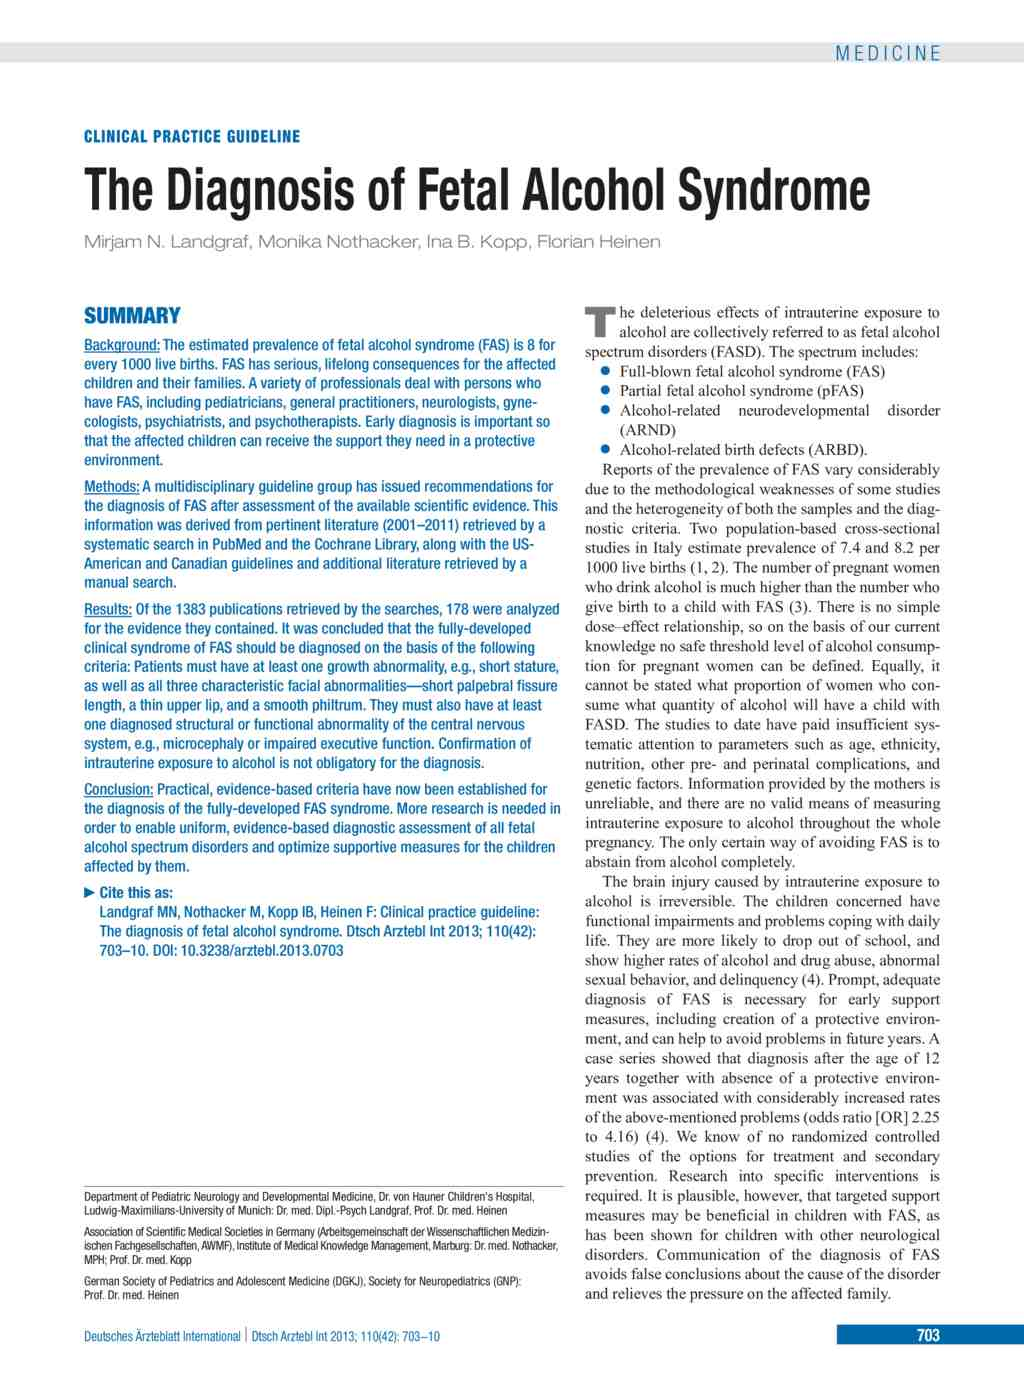 Fetal Alcohol Disorders Are Equally >> The Diagnosis Of Fetal Alcohol Syndrome 18 10 2013